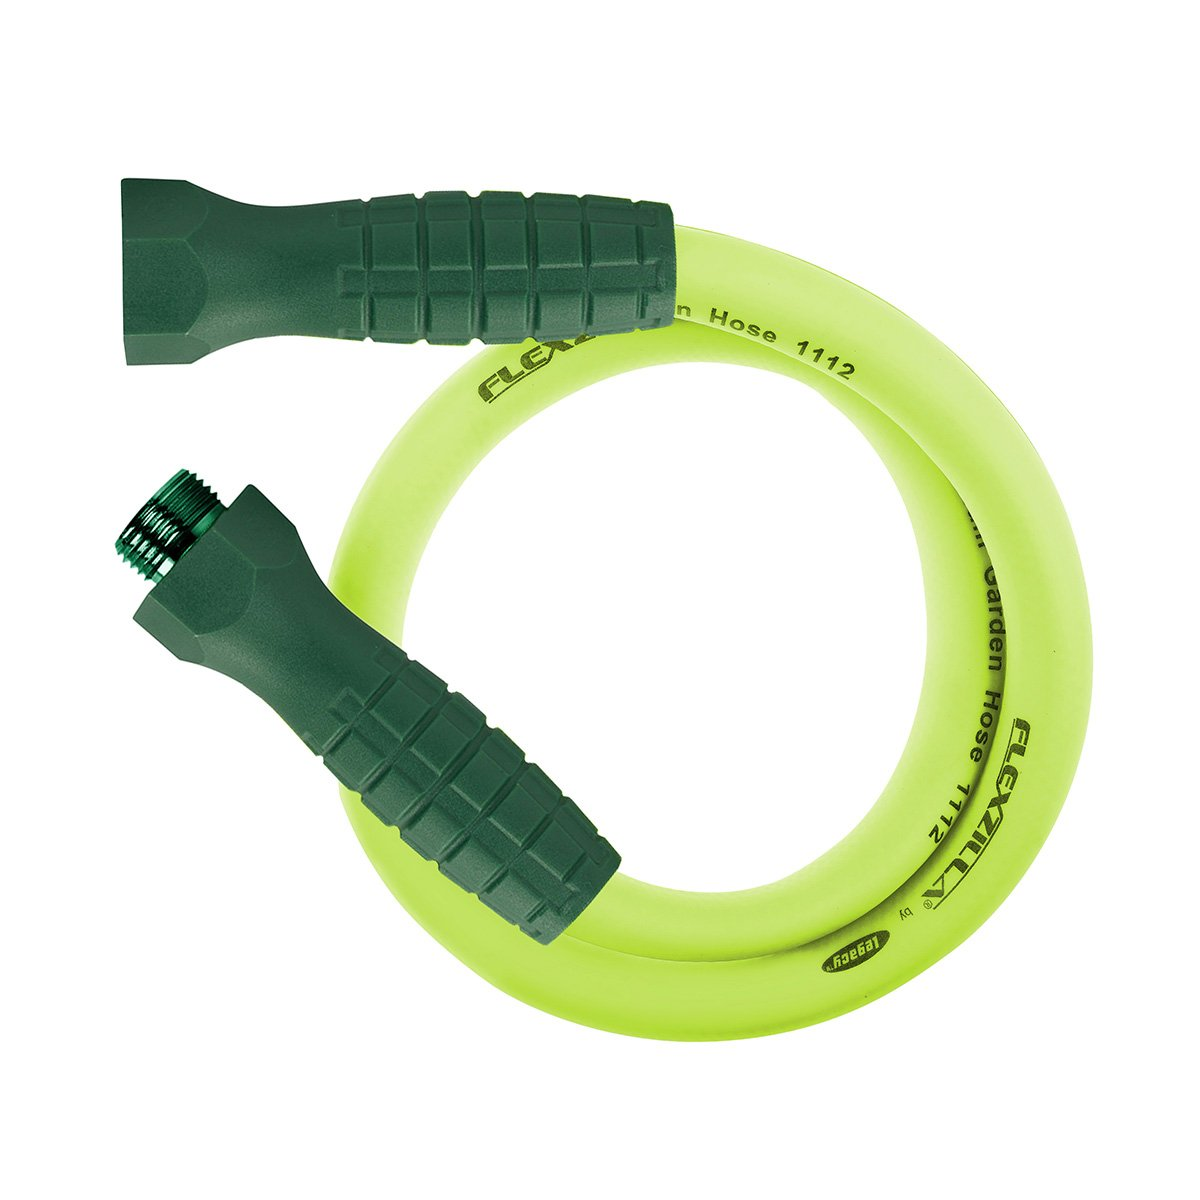 Flexzilla Garden Lead-in Hose with SwivelGrip, 5/8 in. x 3 ft, Heavy Duty, Lightweight, Drinking Water Safe - HFZG503YWS